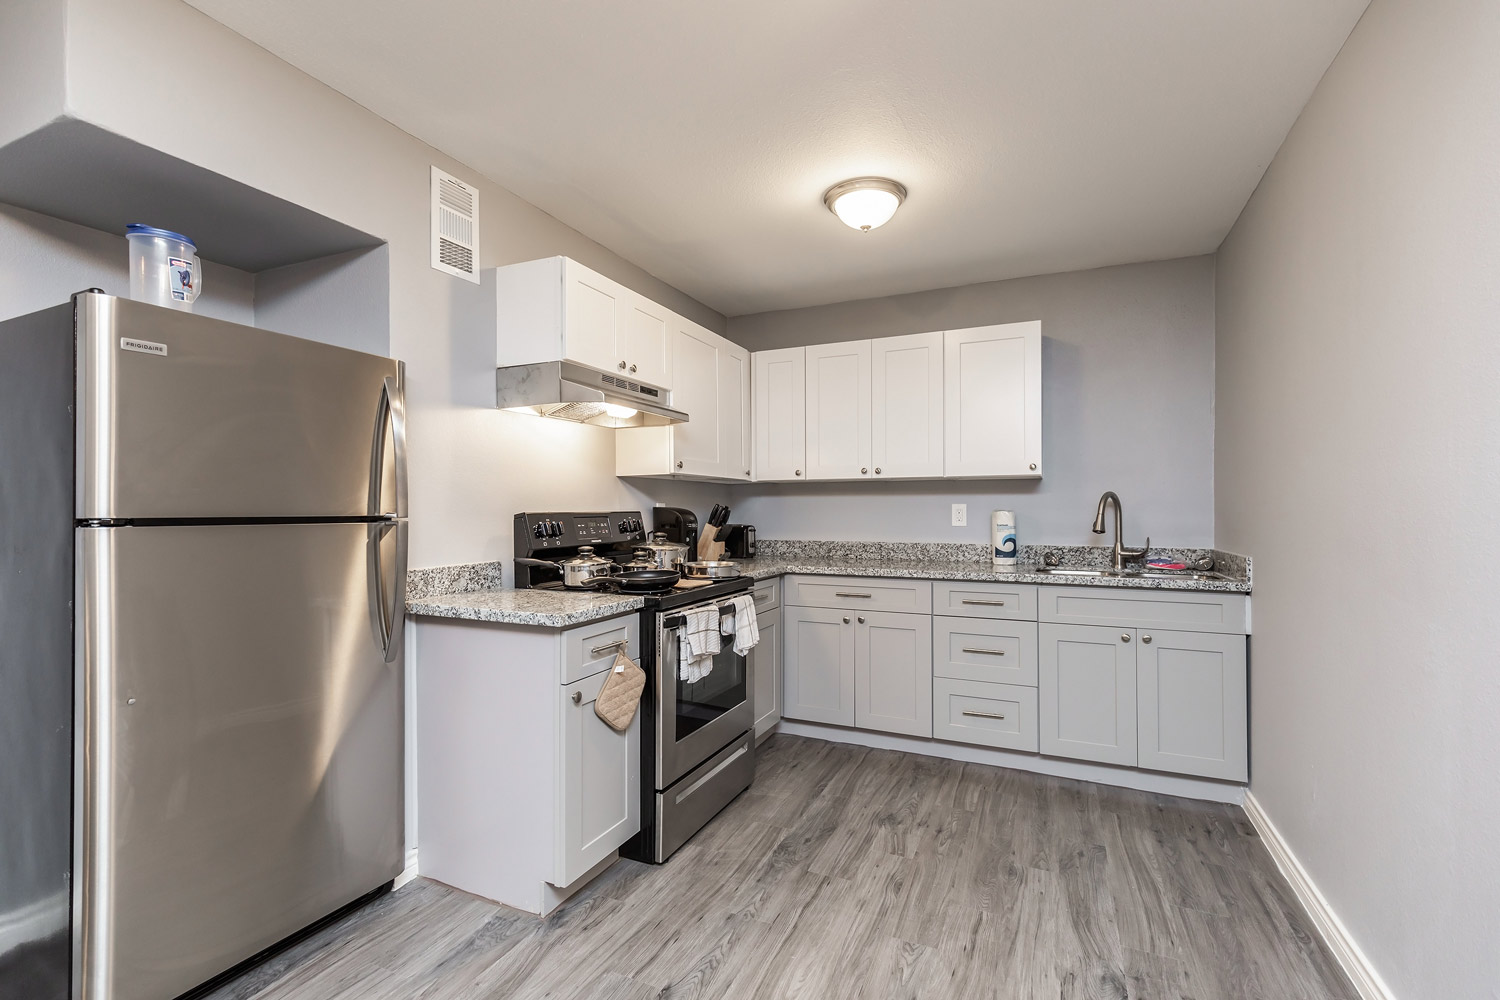 White Kitchen at The Five Points at Texas Apartments in Texas City, Texas